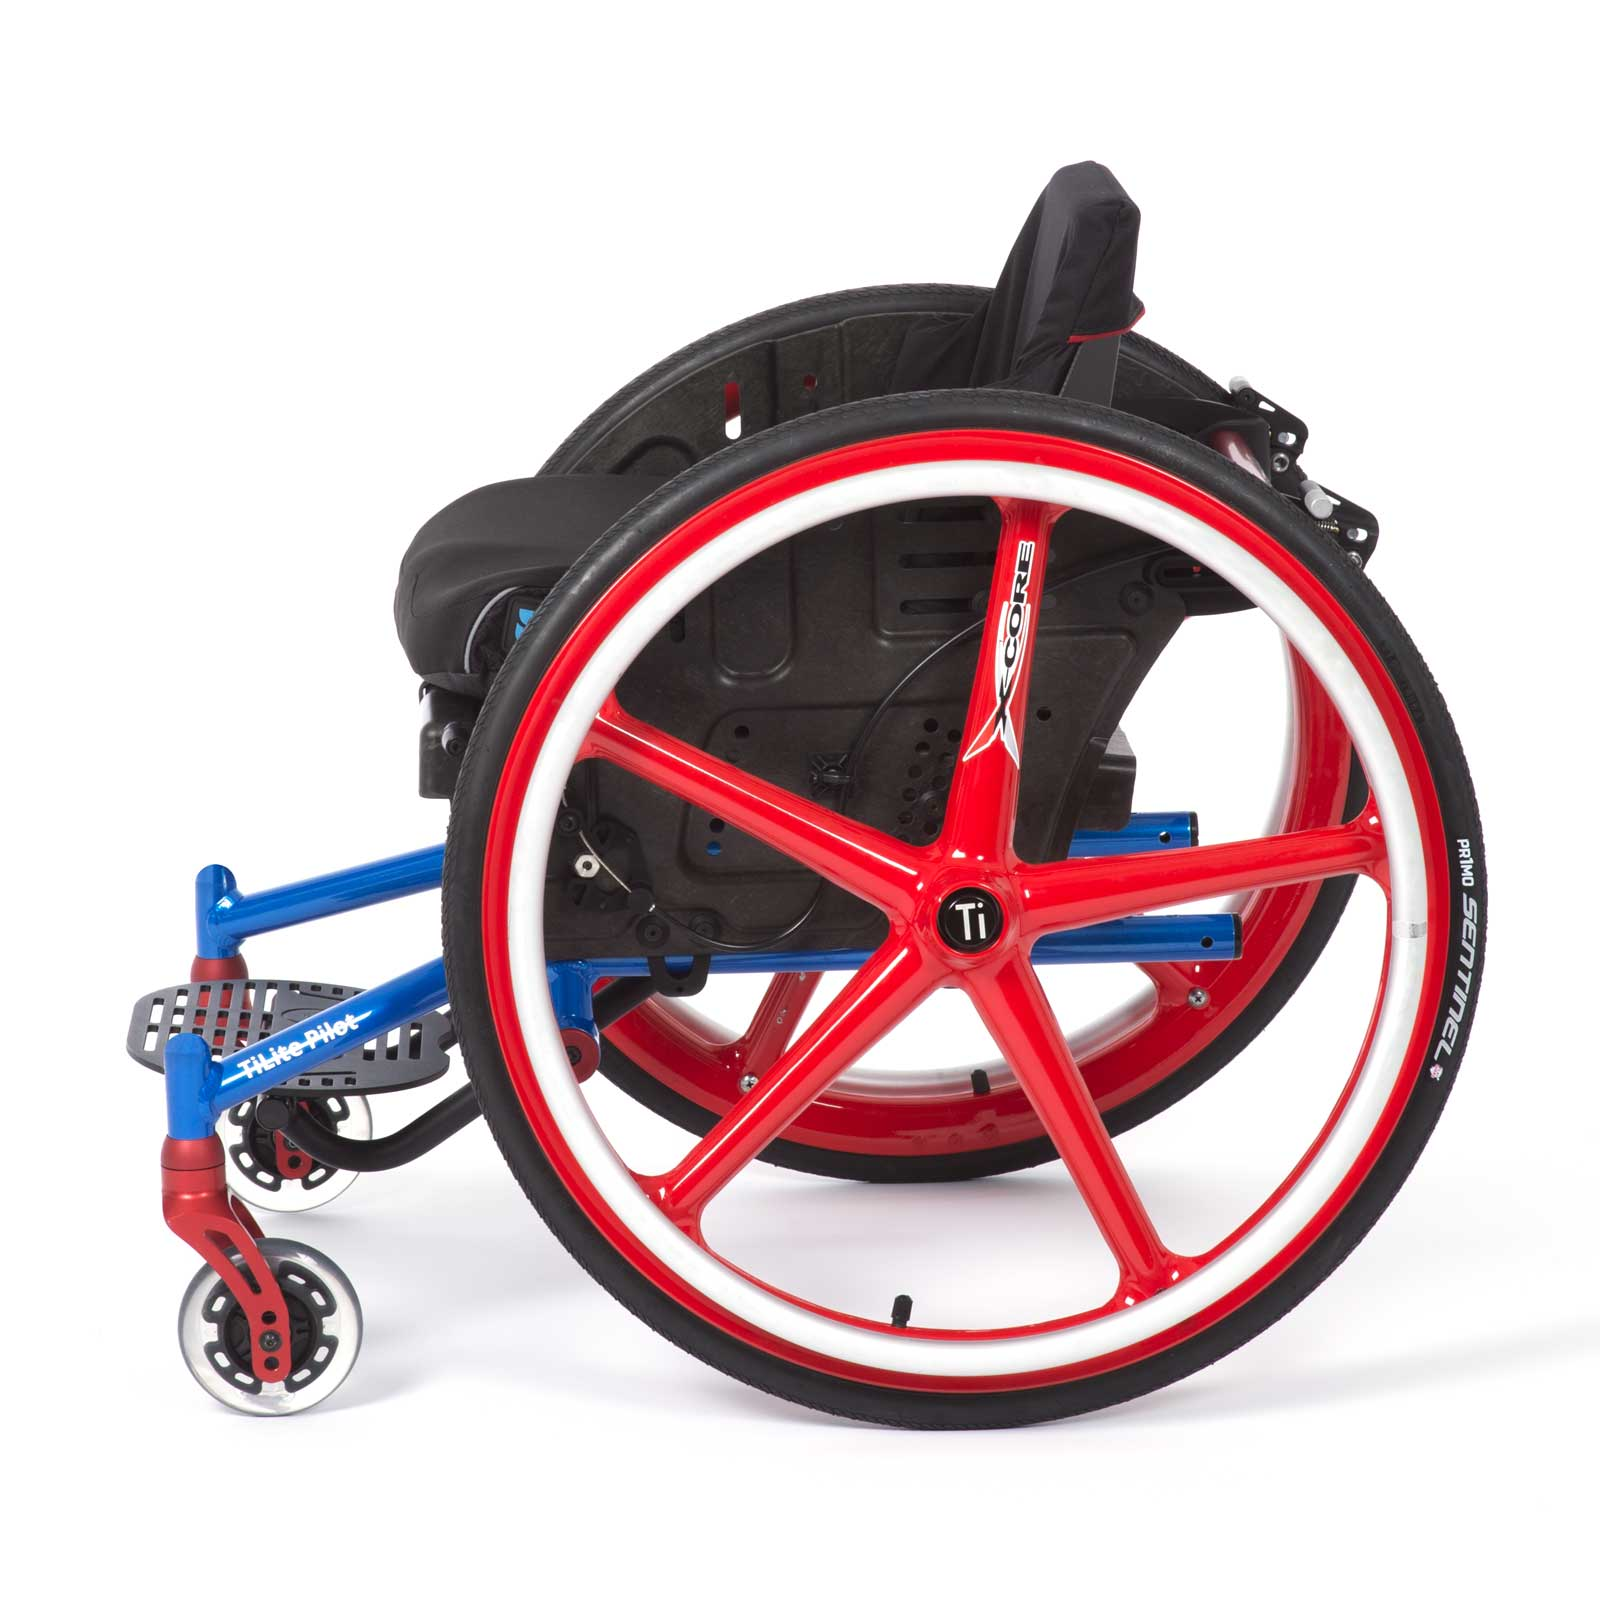 Blue-Red Right Side of TiLite Pilot Wheelchair